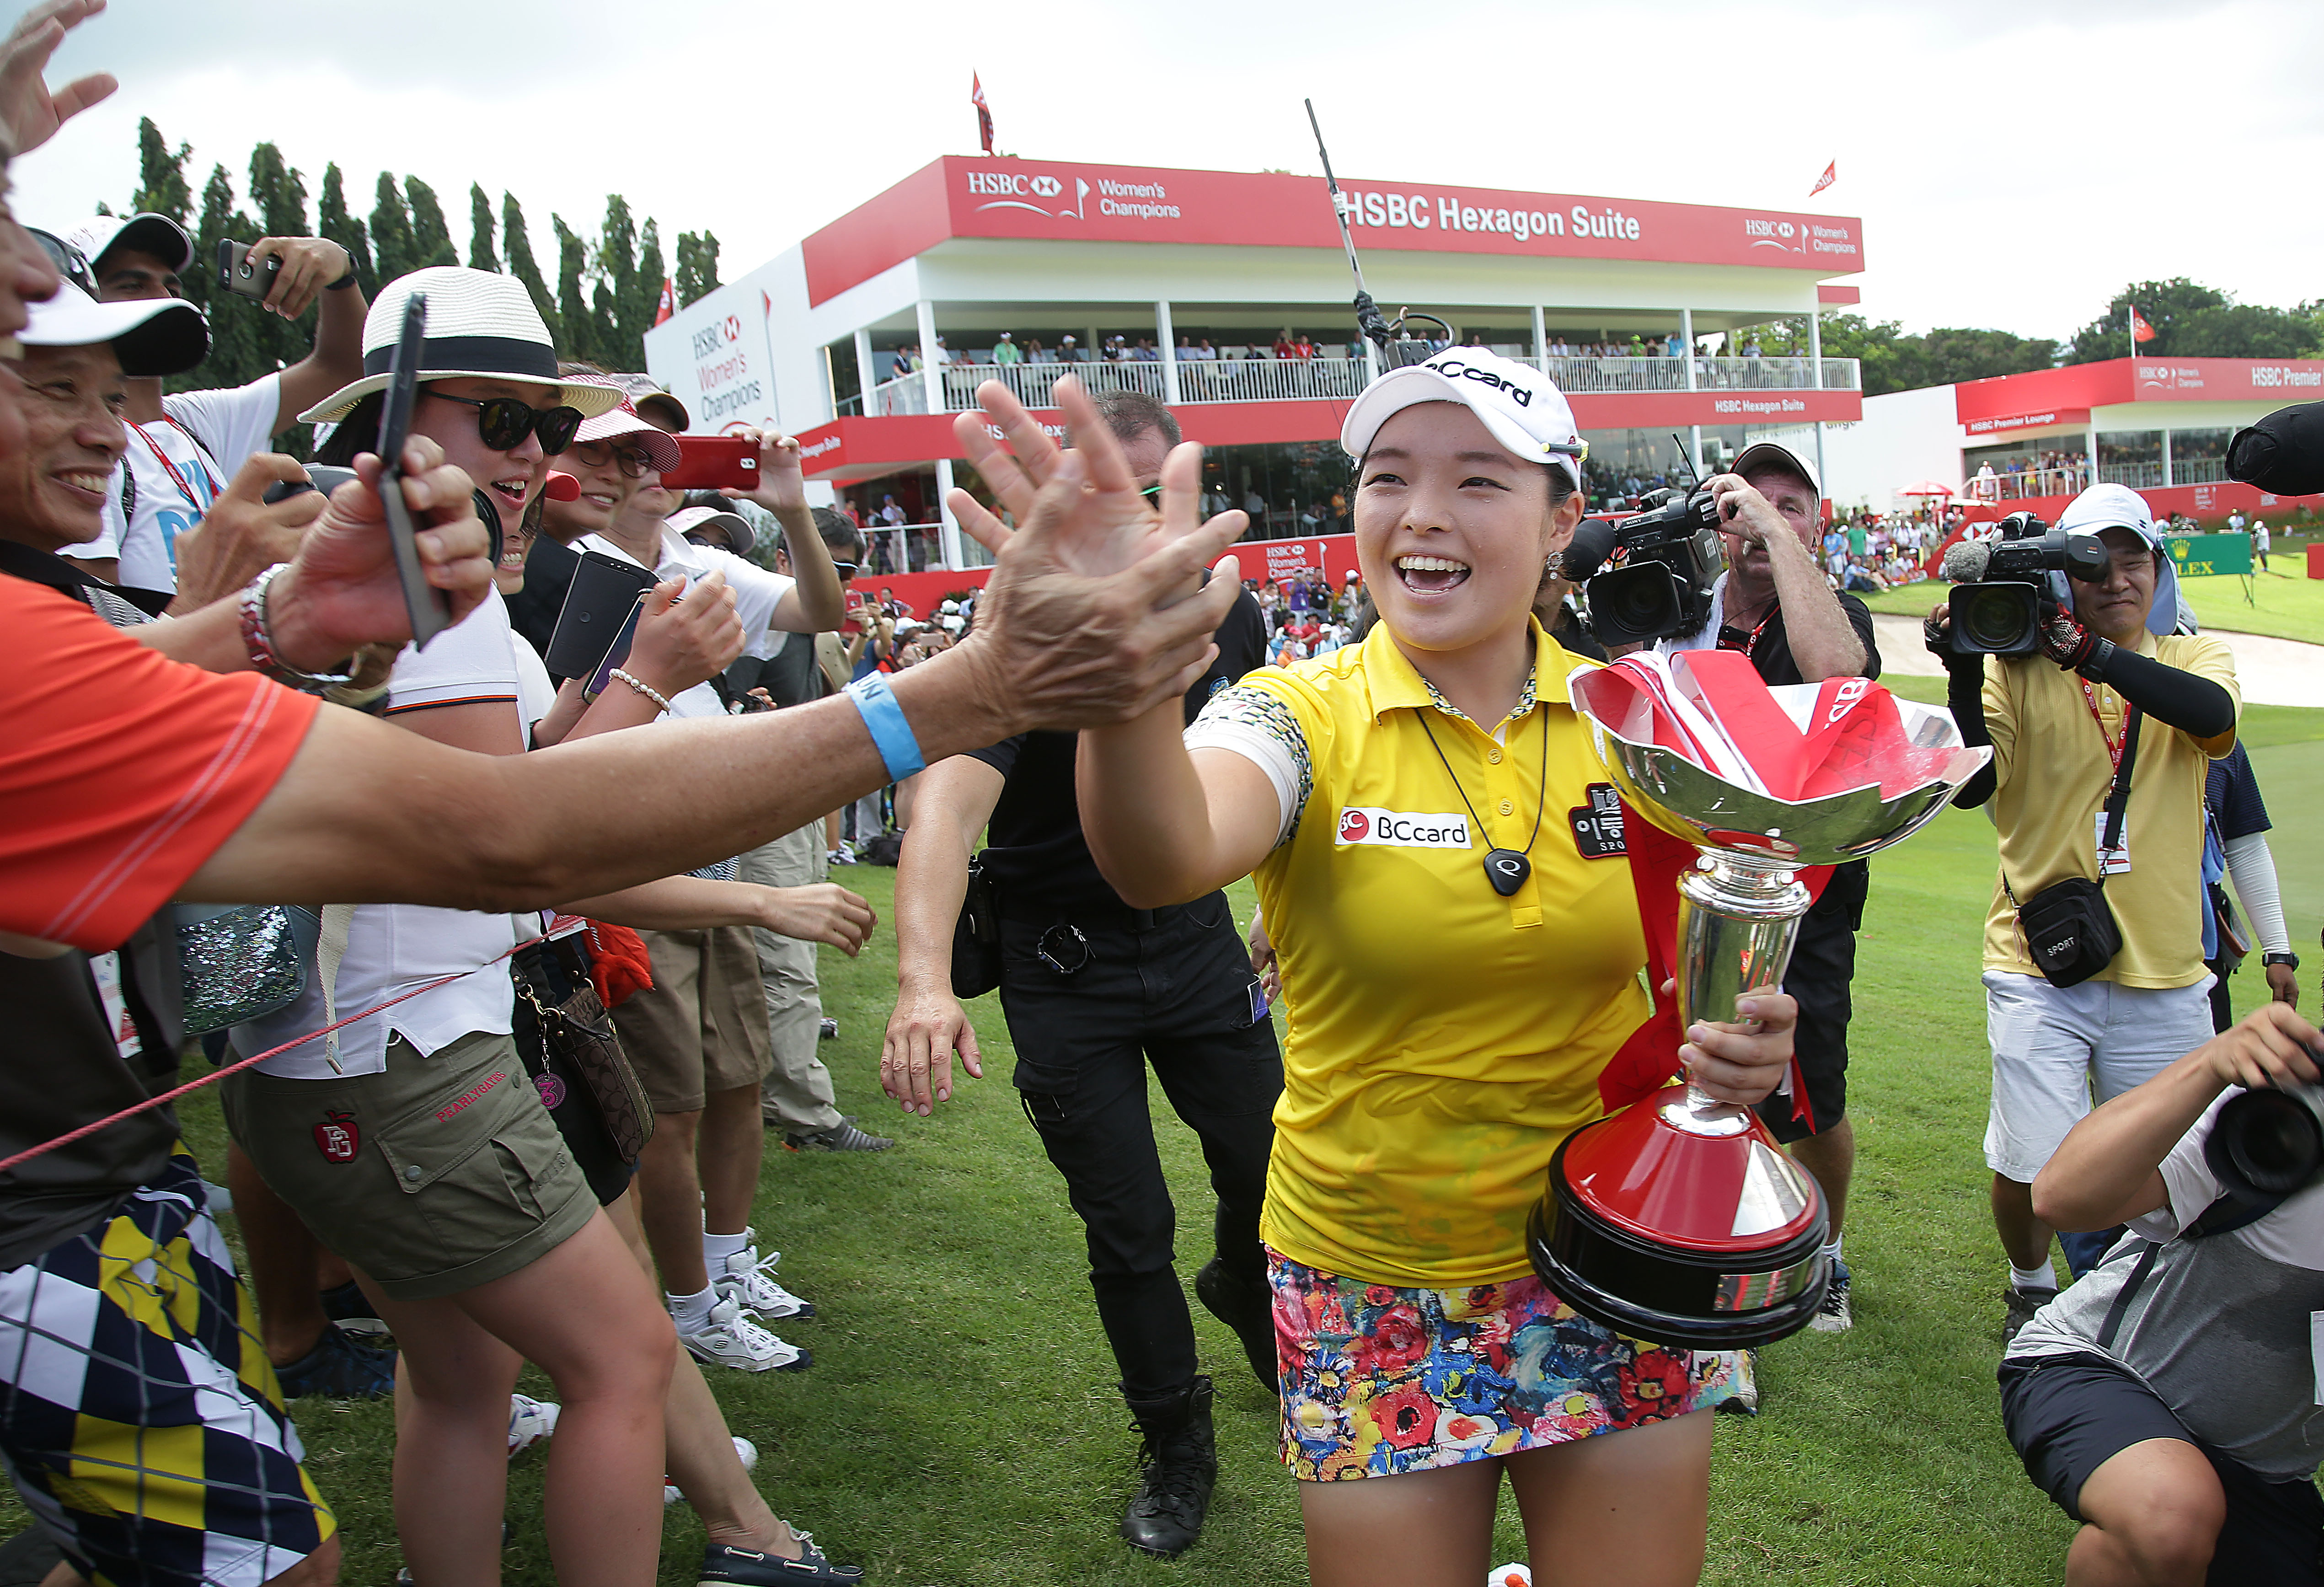 Jang Ha Na of South Korea celebrates with fans after winning the HSBC Women's Champions Golf tournament on Sunday, March 6, 2016, in Singapore. (AP Photo/Wong Maye-E)